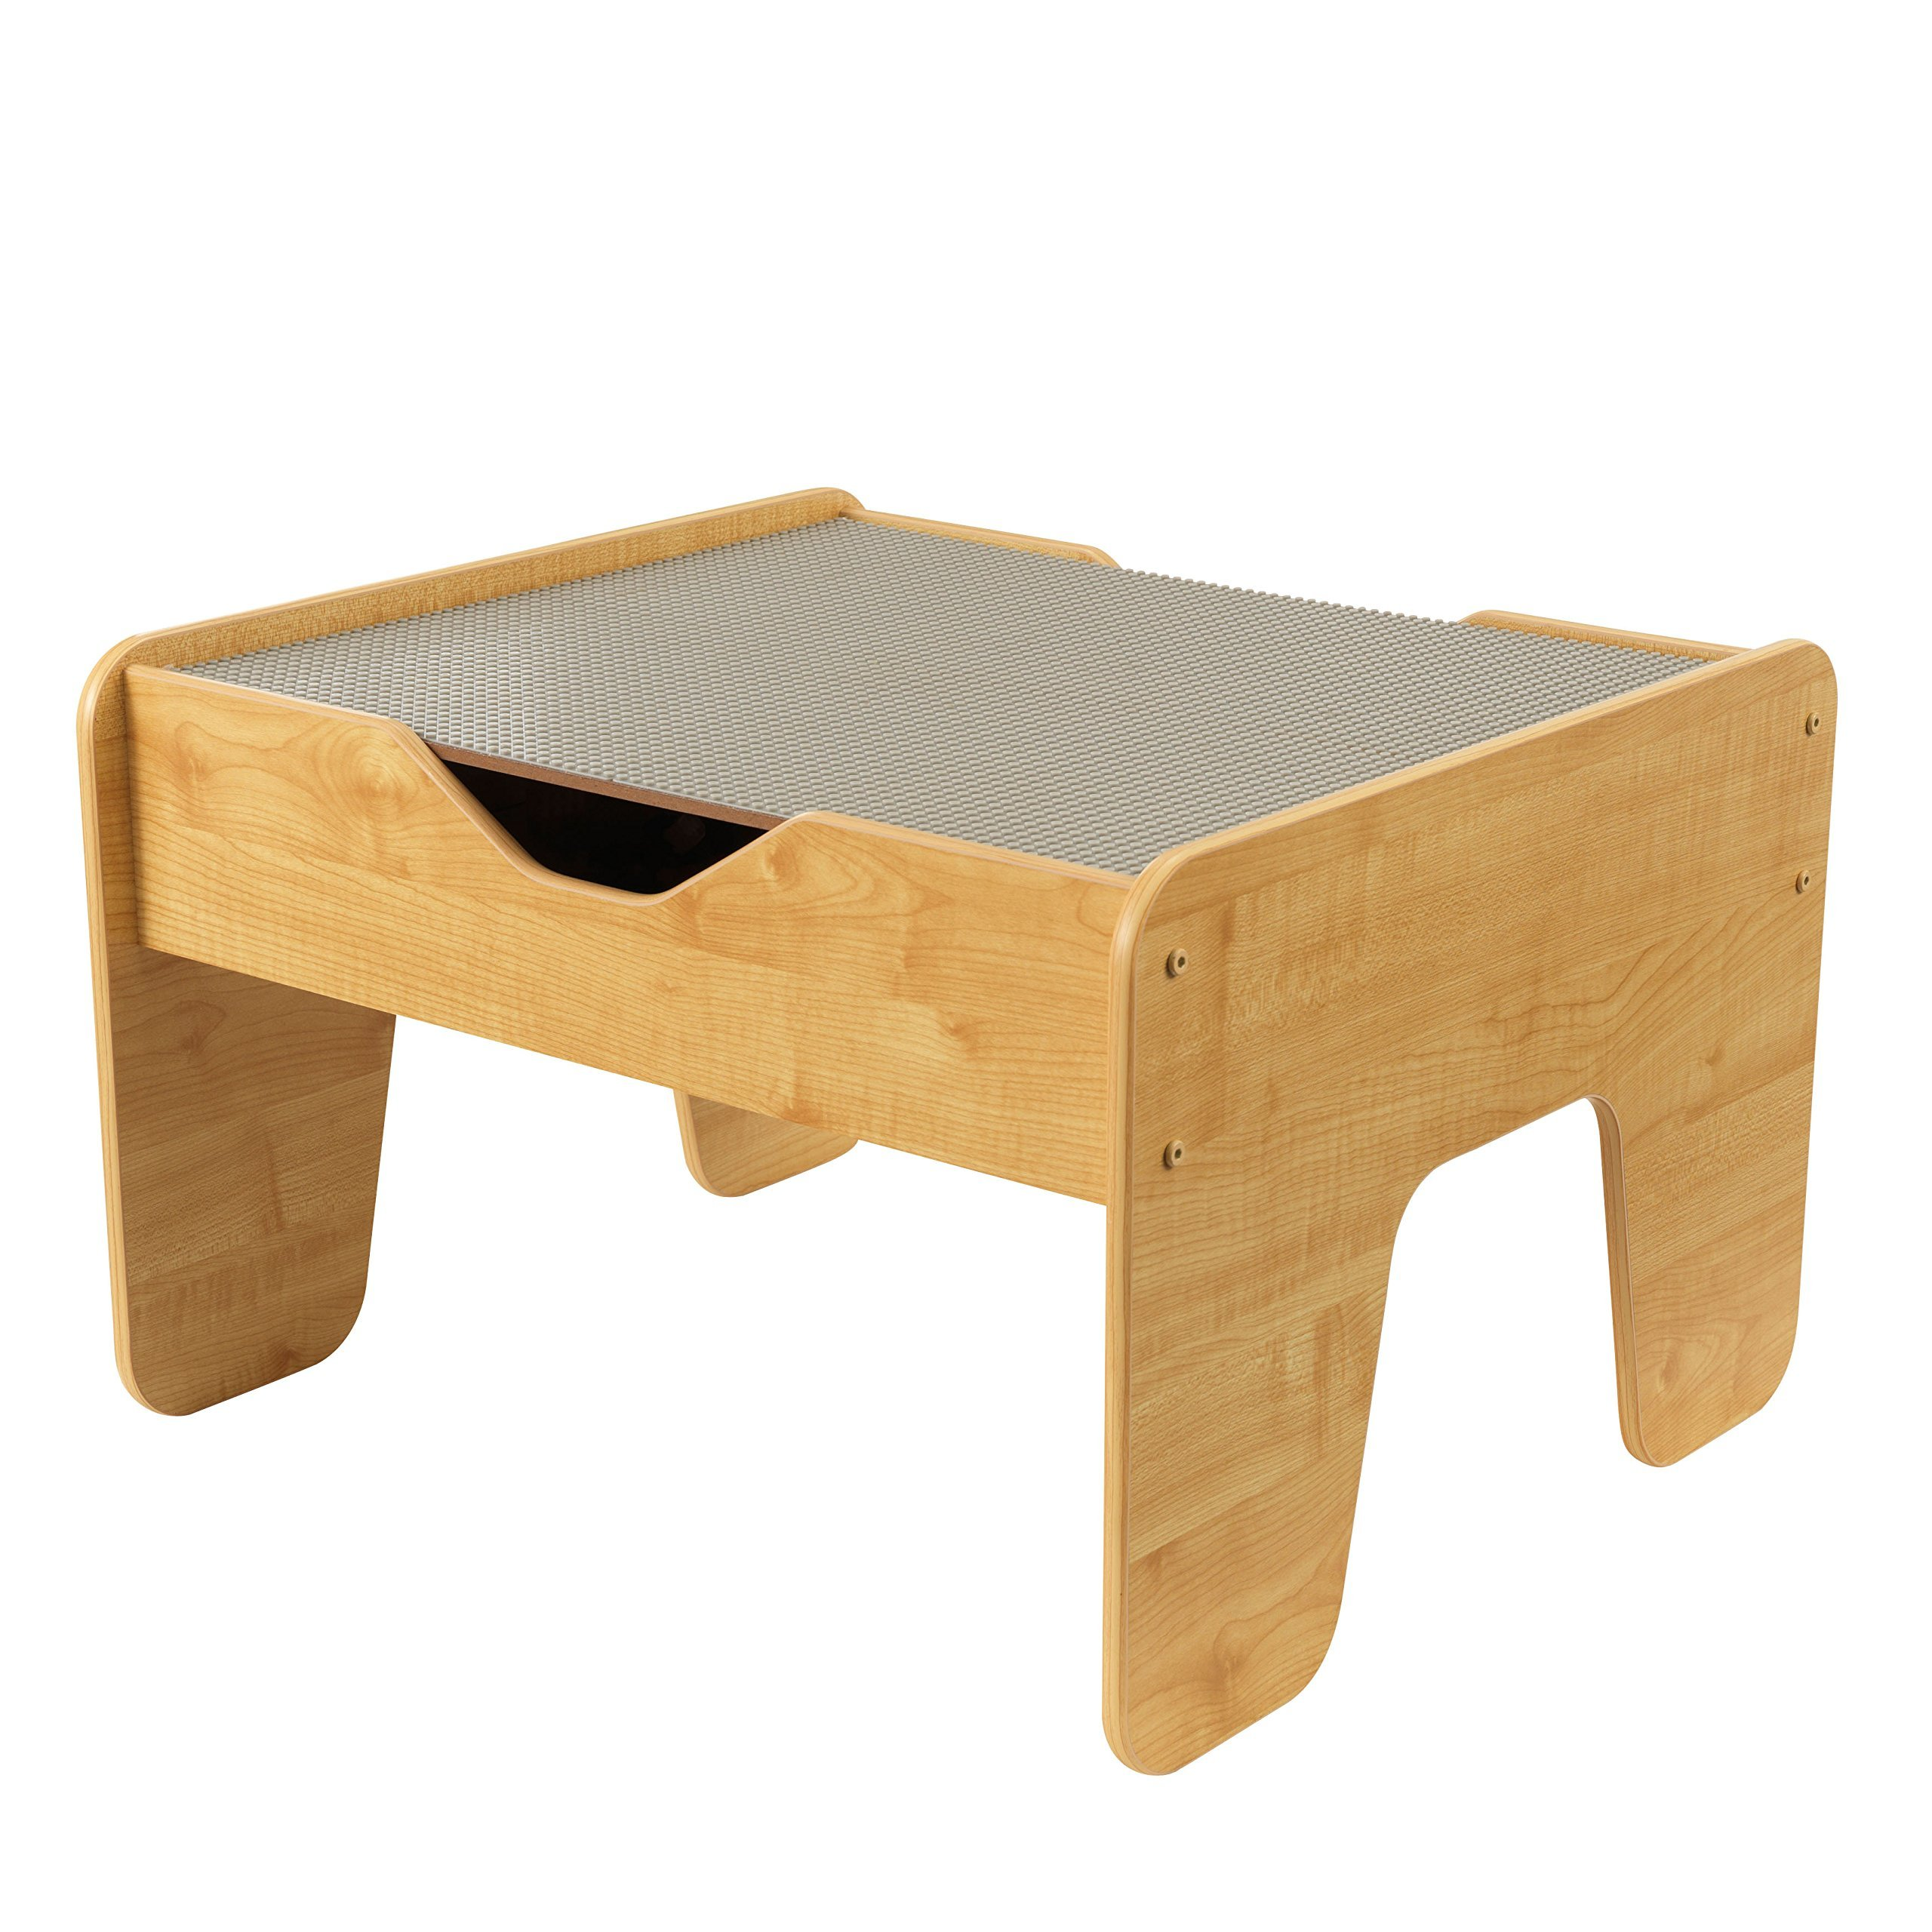 KidKraft 2-in-1 Activity Table with Board, Gray/Natural (Renewed) by KidKraft